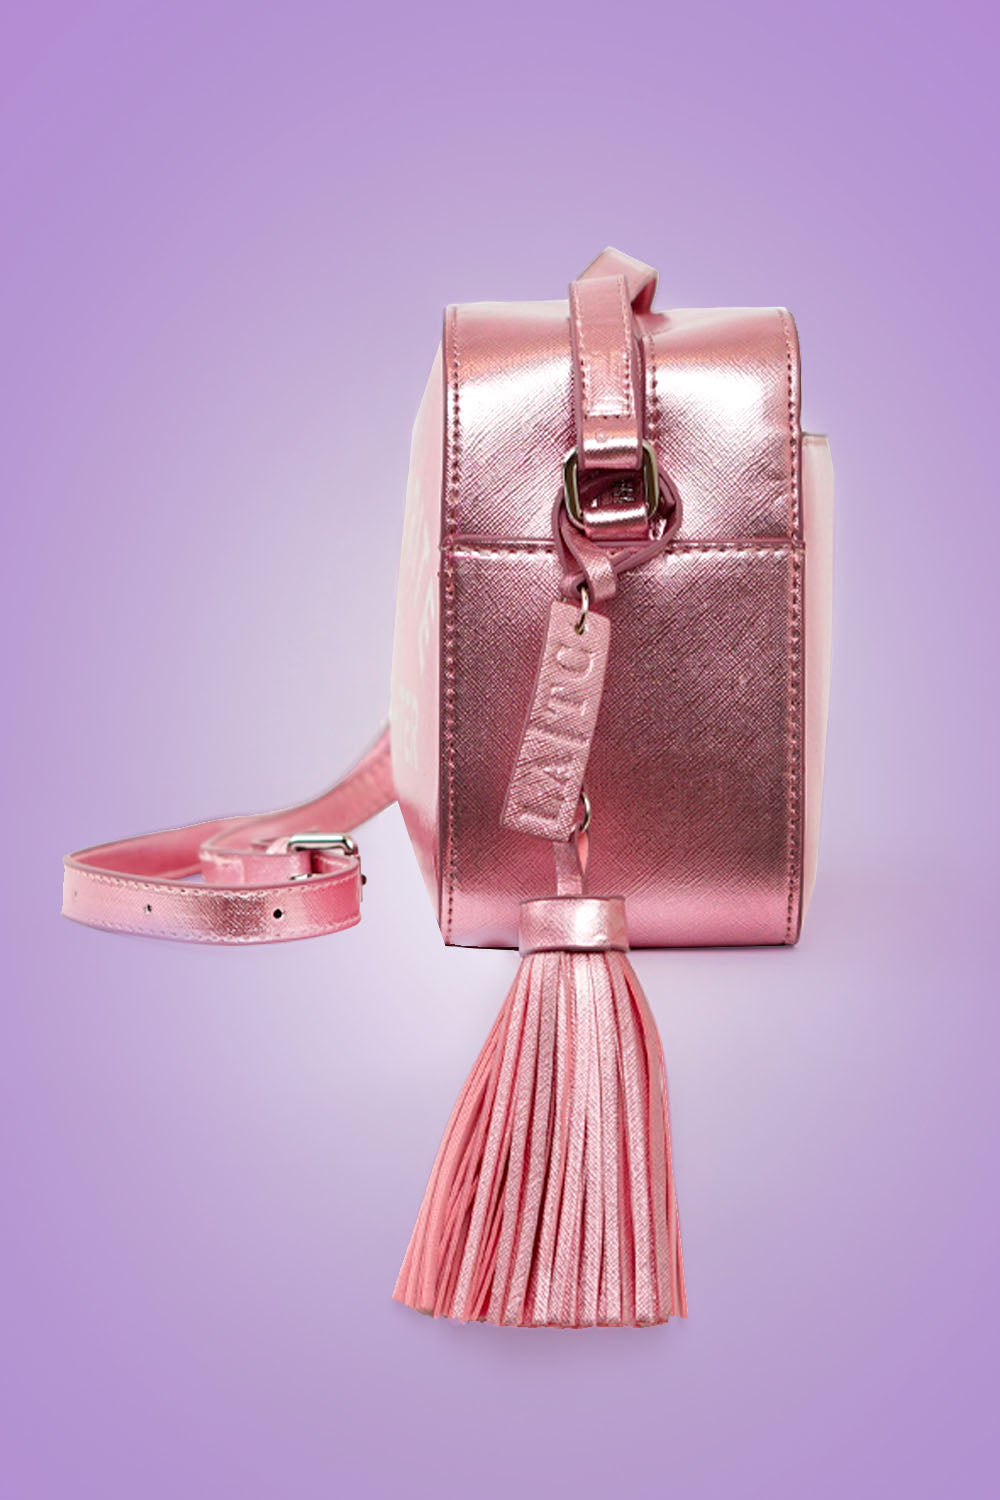 VEGAN CROSSBODY BAG - Dress Like Coco (Pink)